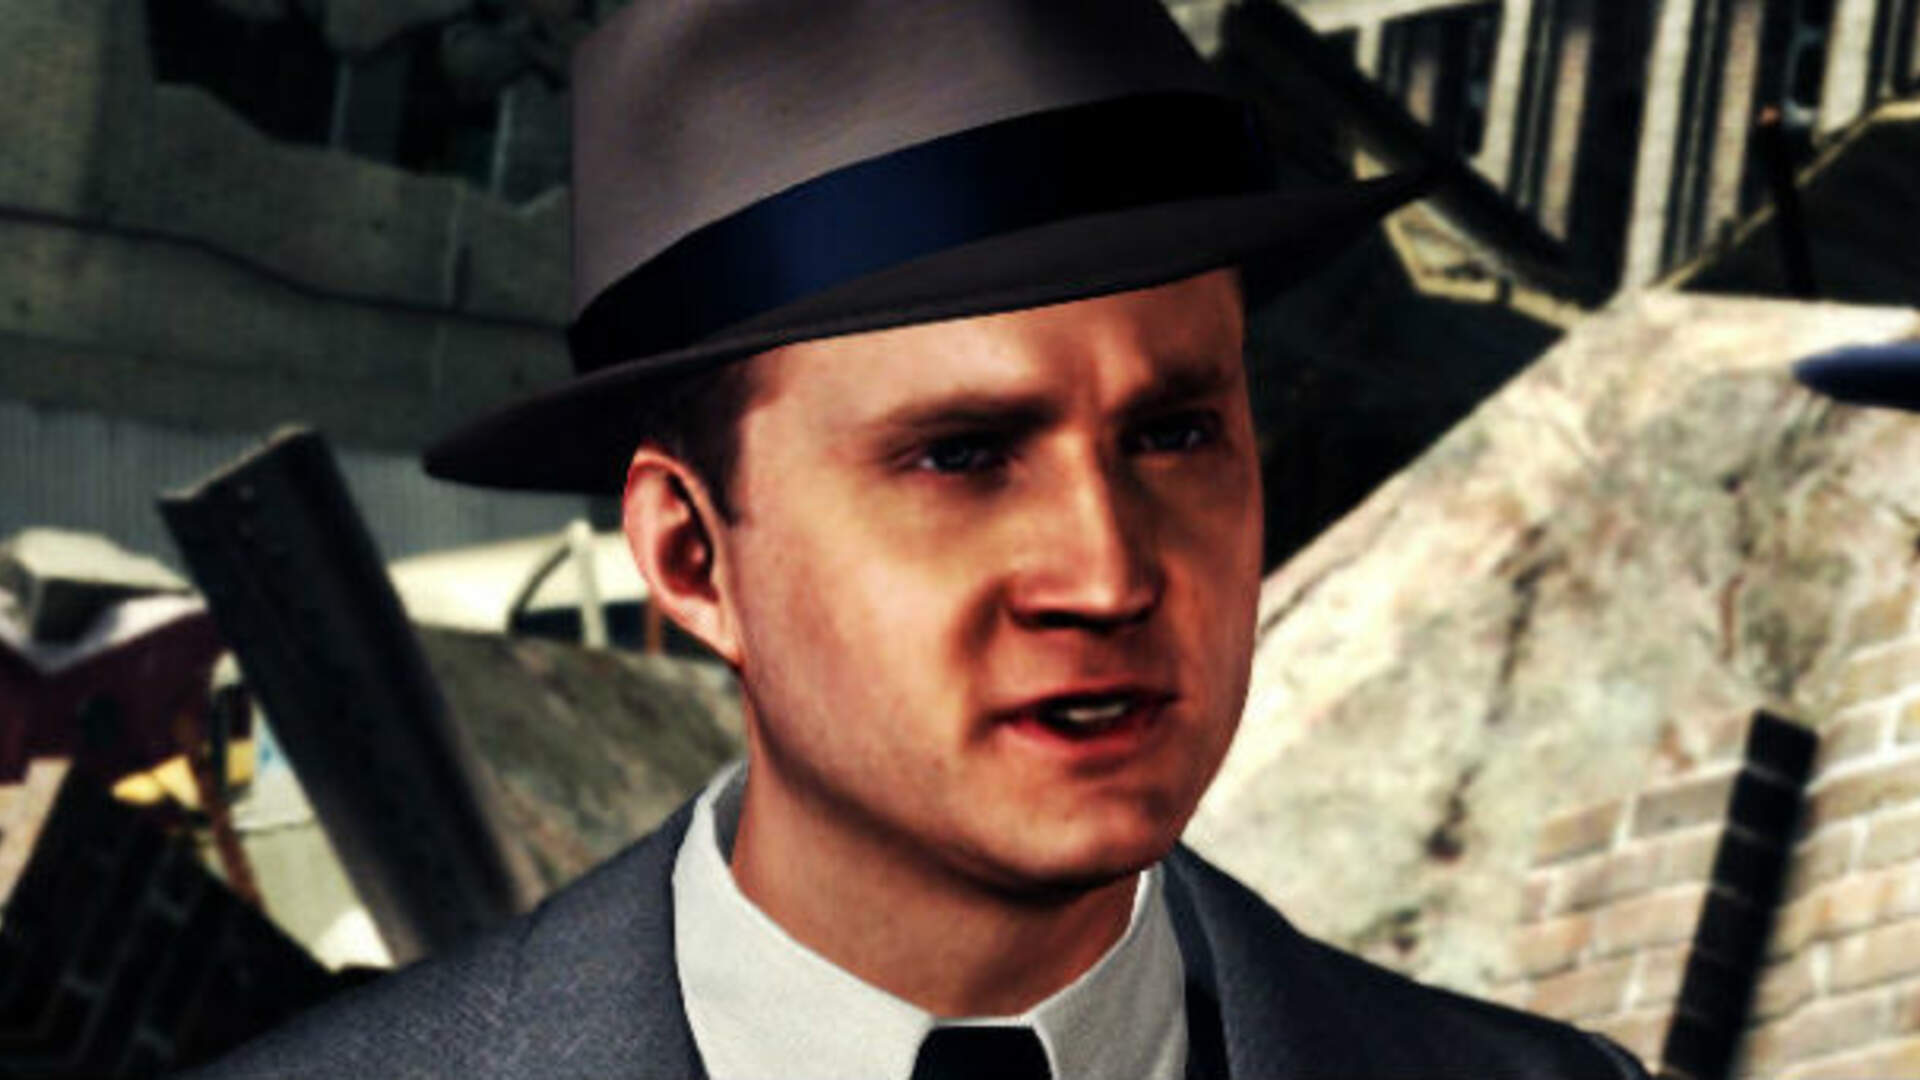 Rockstar Humble Sale Includes Great Prices on LA Noire, Grand Theft Auto Games